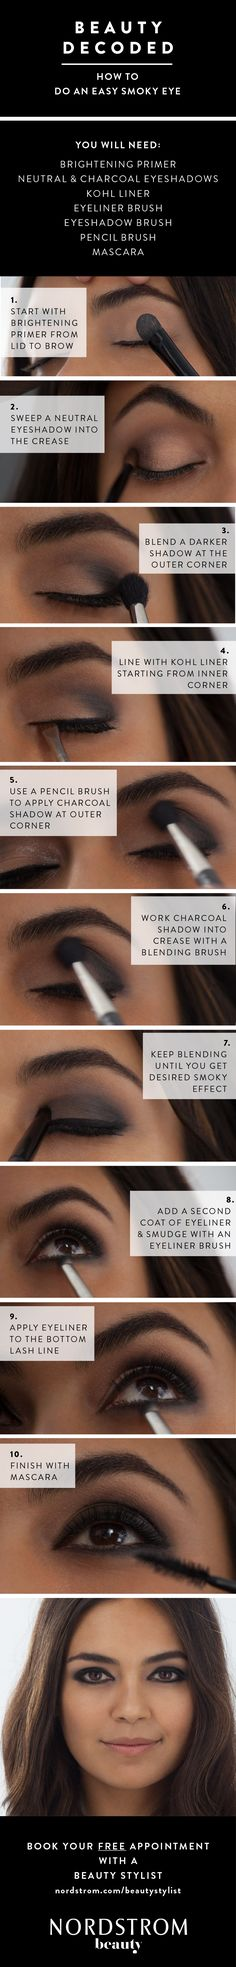 10 easy steps to the perfect smoky eye. Love this how-to guide for makeup tips. All you need is a primer, two tones of eyeshadows, kohl liner, eyeshadow brush, pencil brush and mascara!